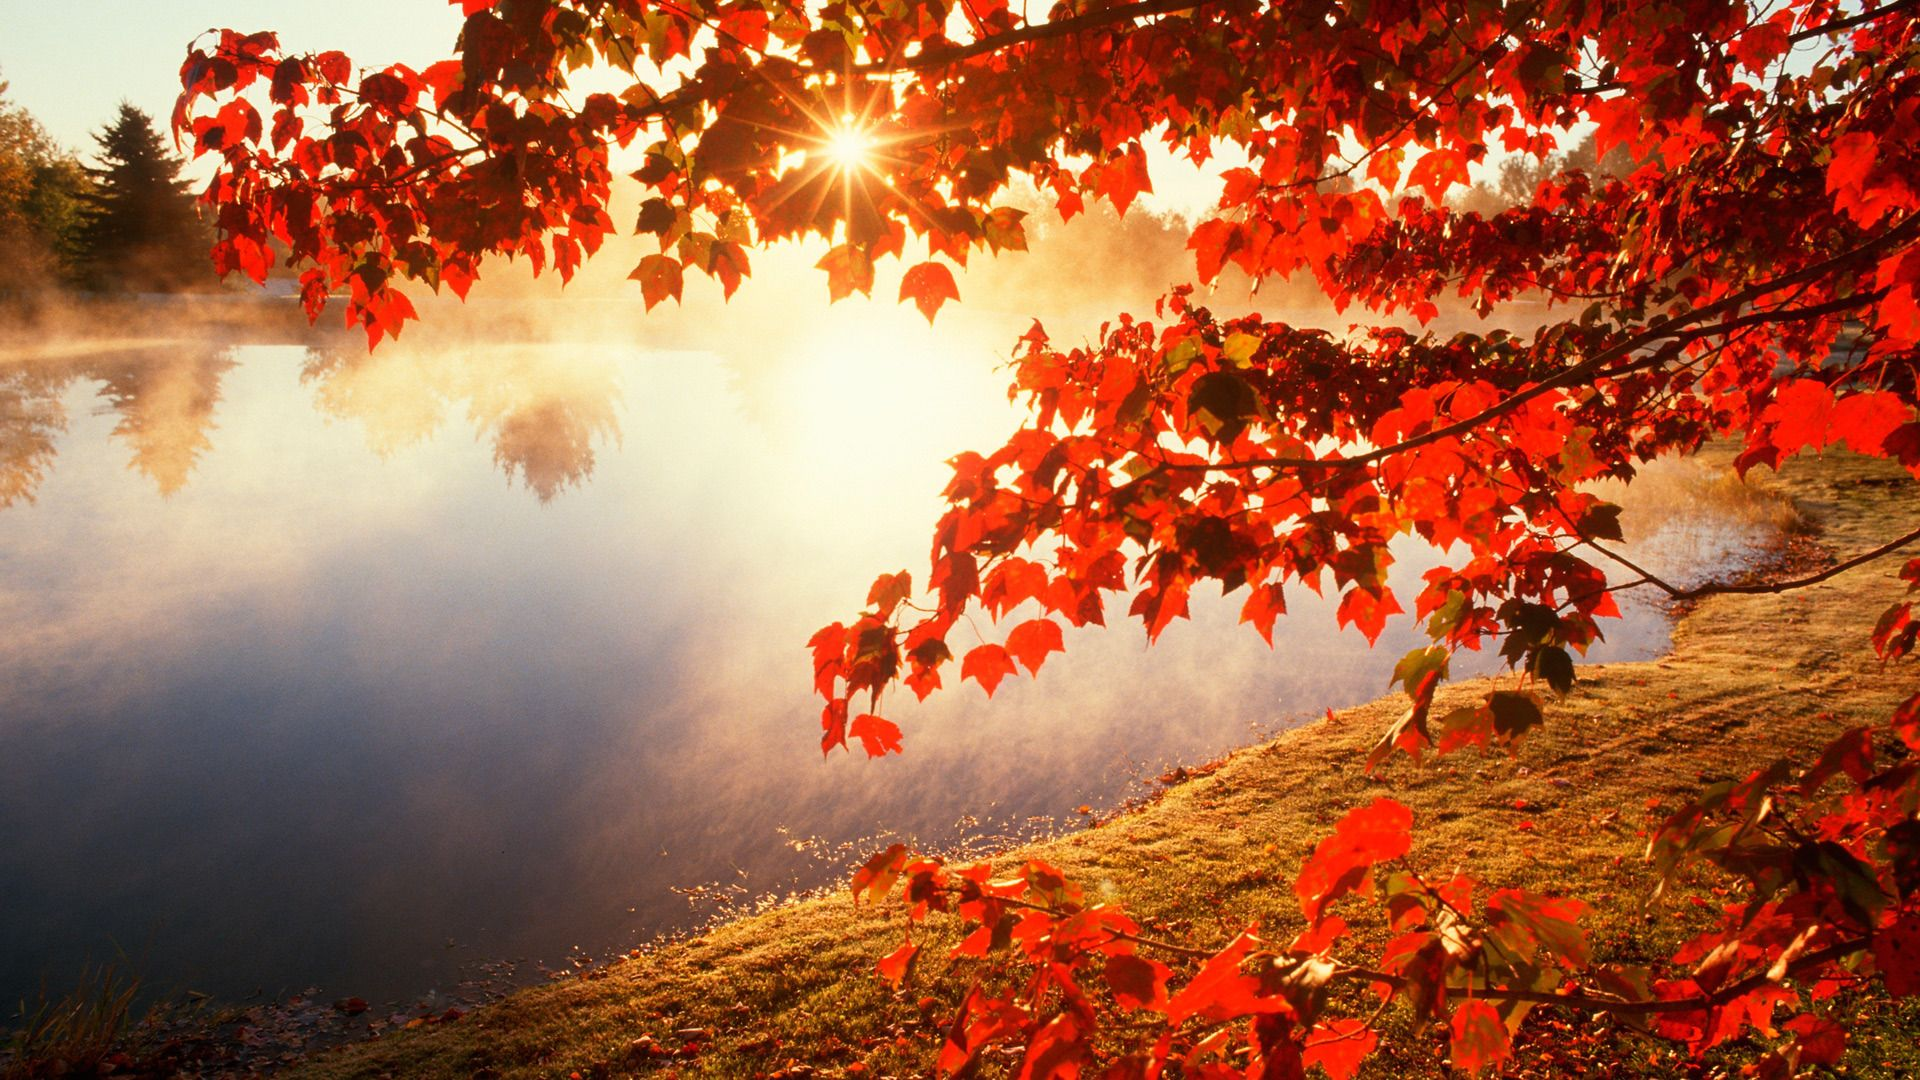 beautiful nature backgrounds for desktop